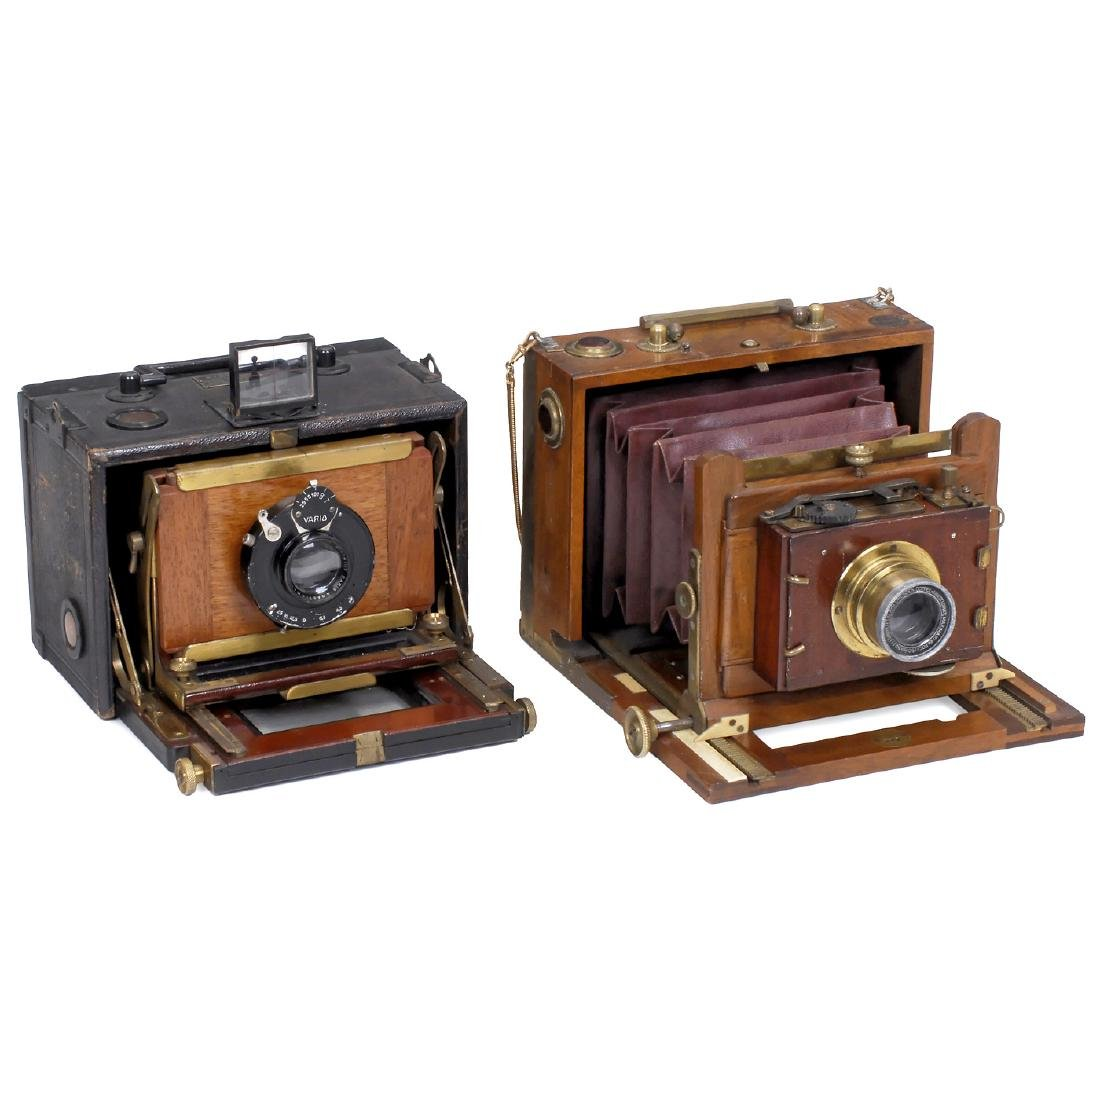 2 French Folding-Plate Cameras, c. 1890-1900